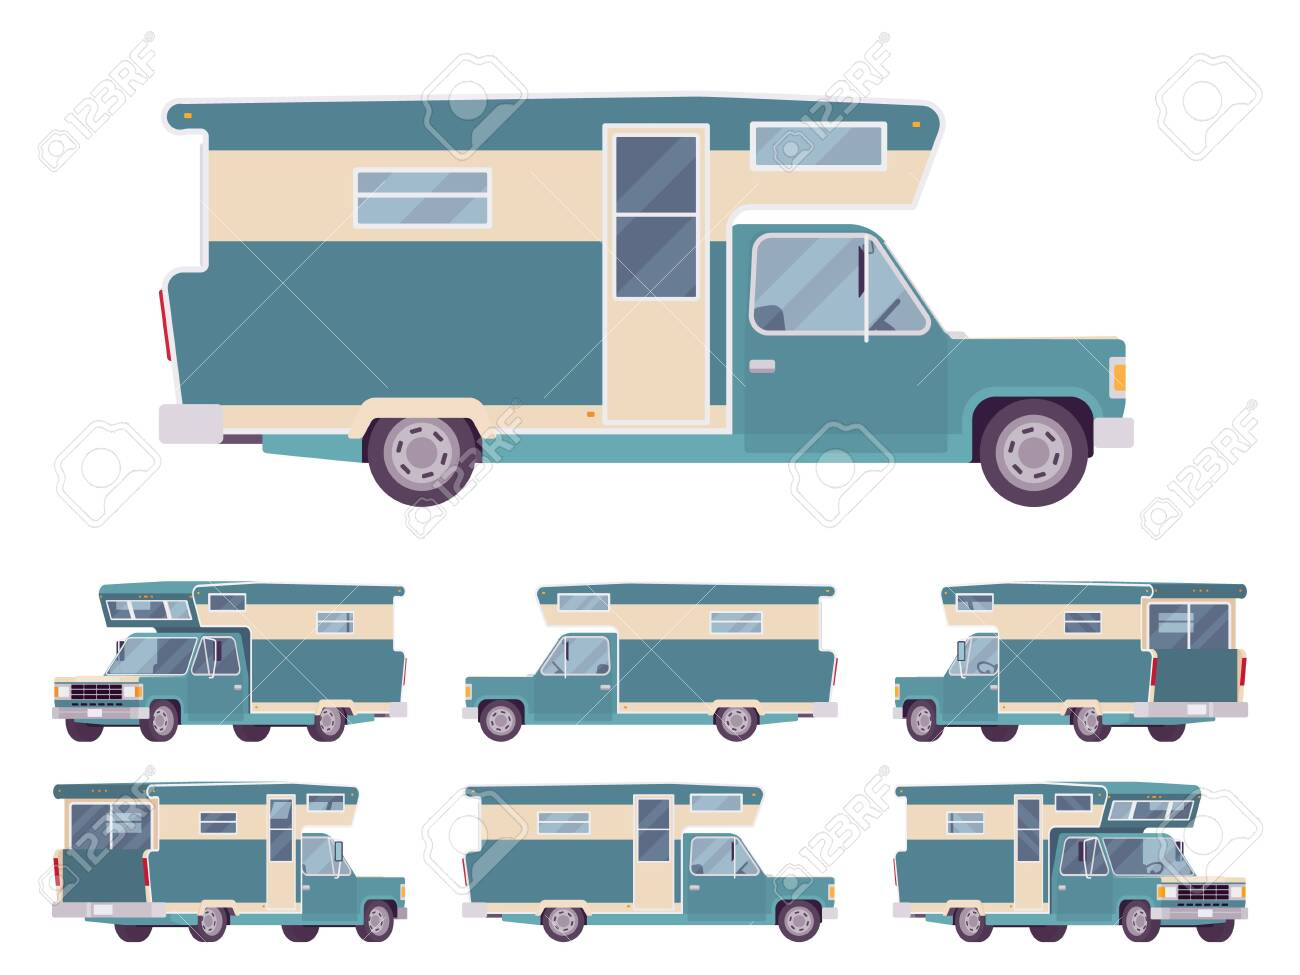 RV camper turquoise van car, recreational vehicle. Motorhome trailer, living accommodations, holiday journey caravan, convenient home on wheels. Vector flat style cartoon illustration, different views - 154559972